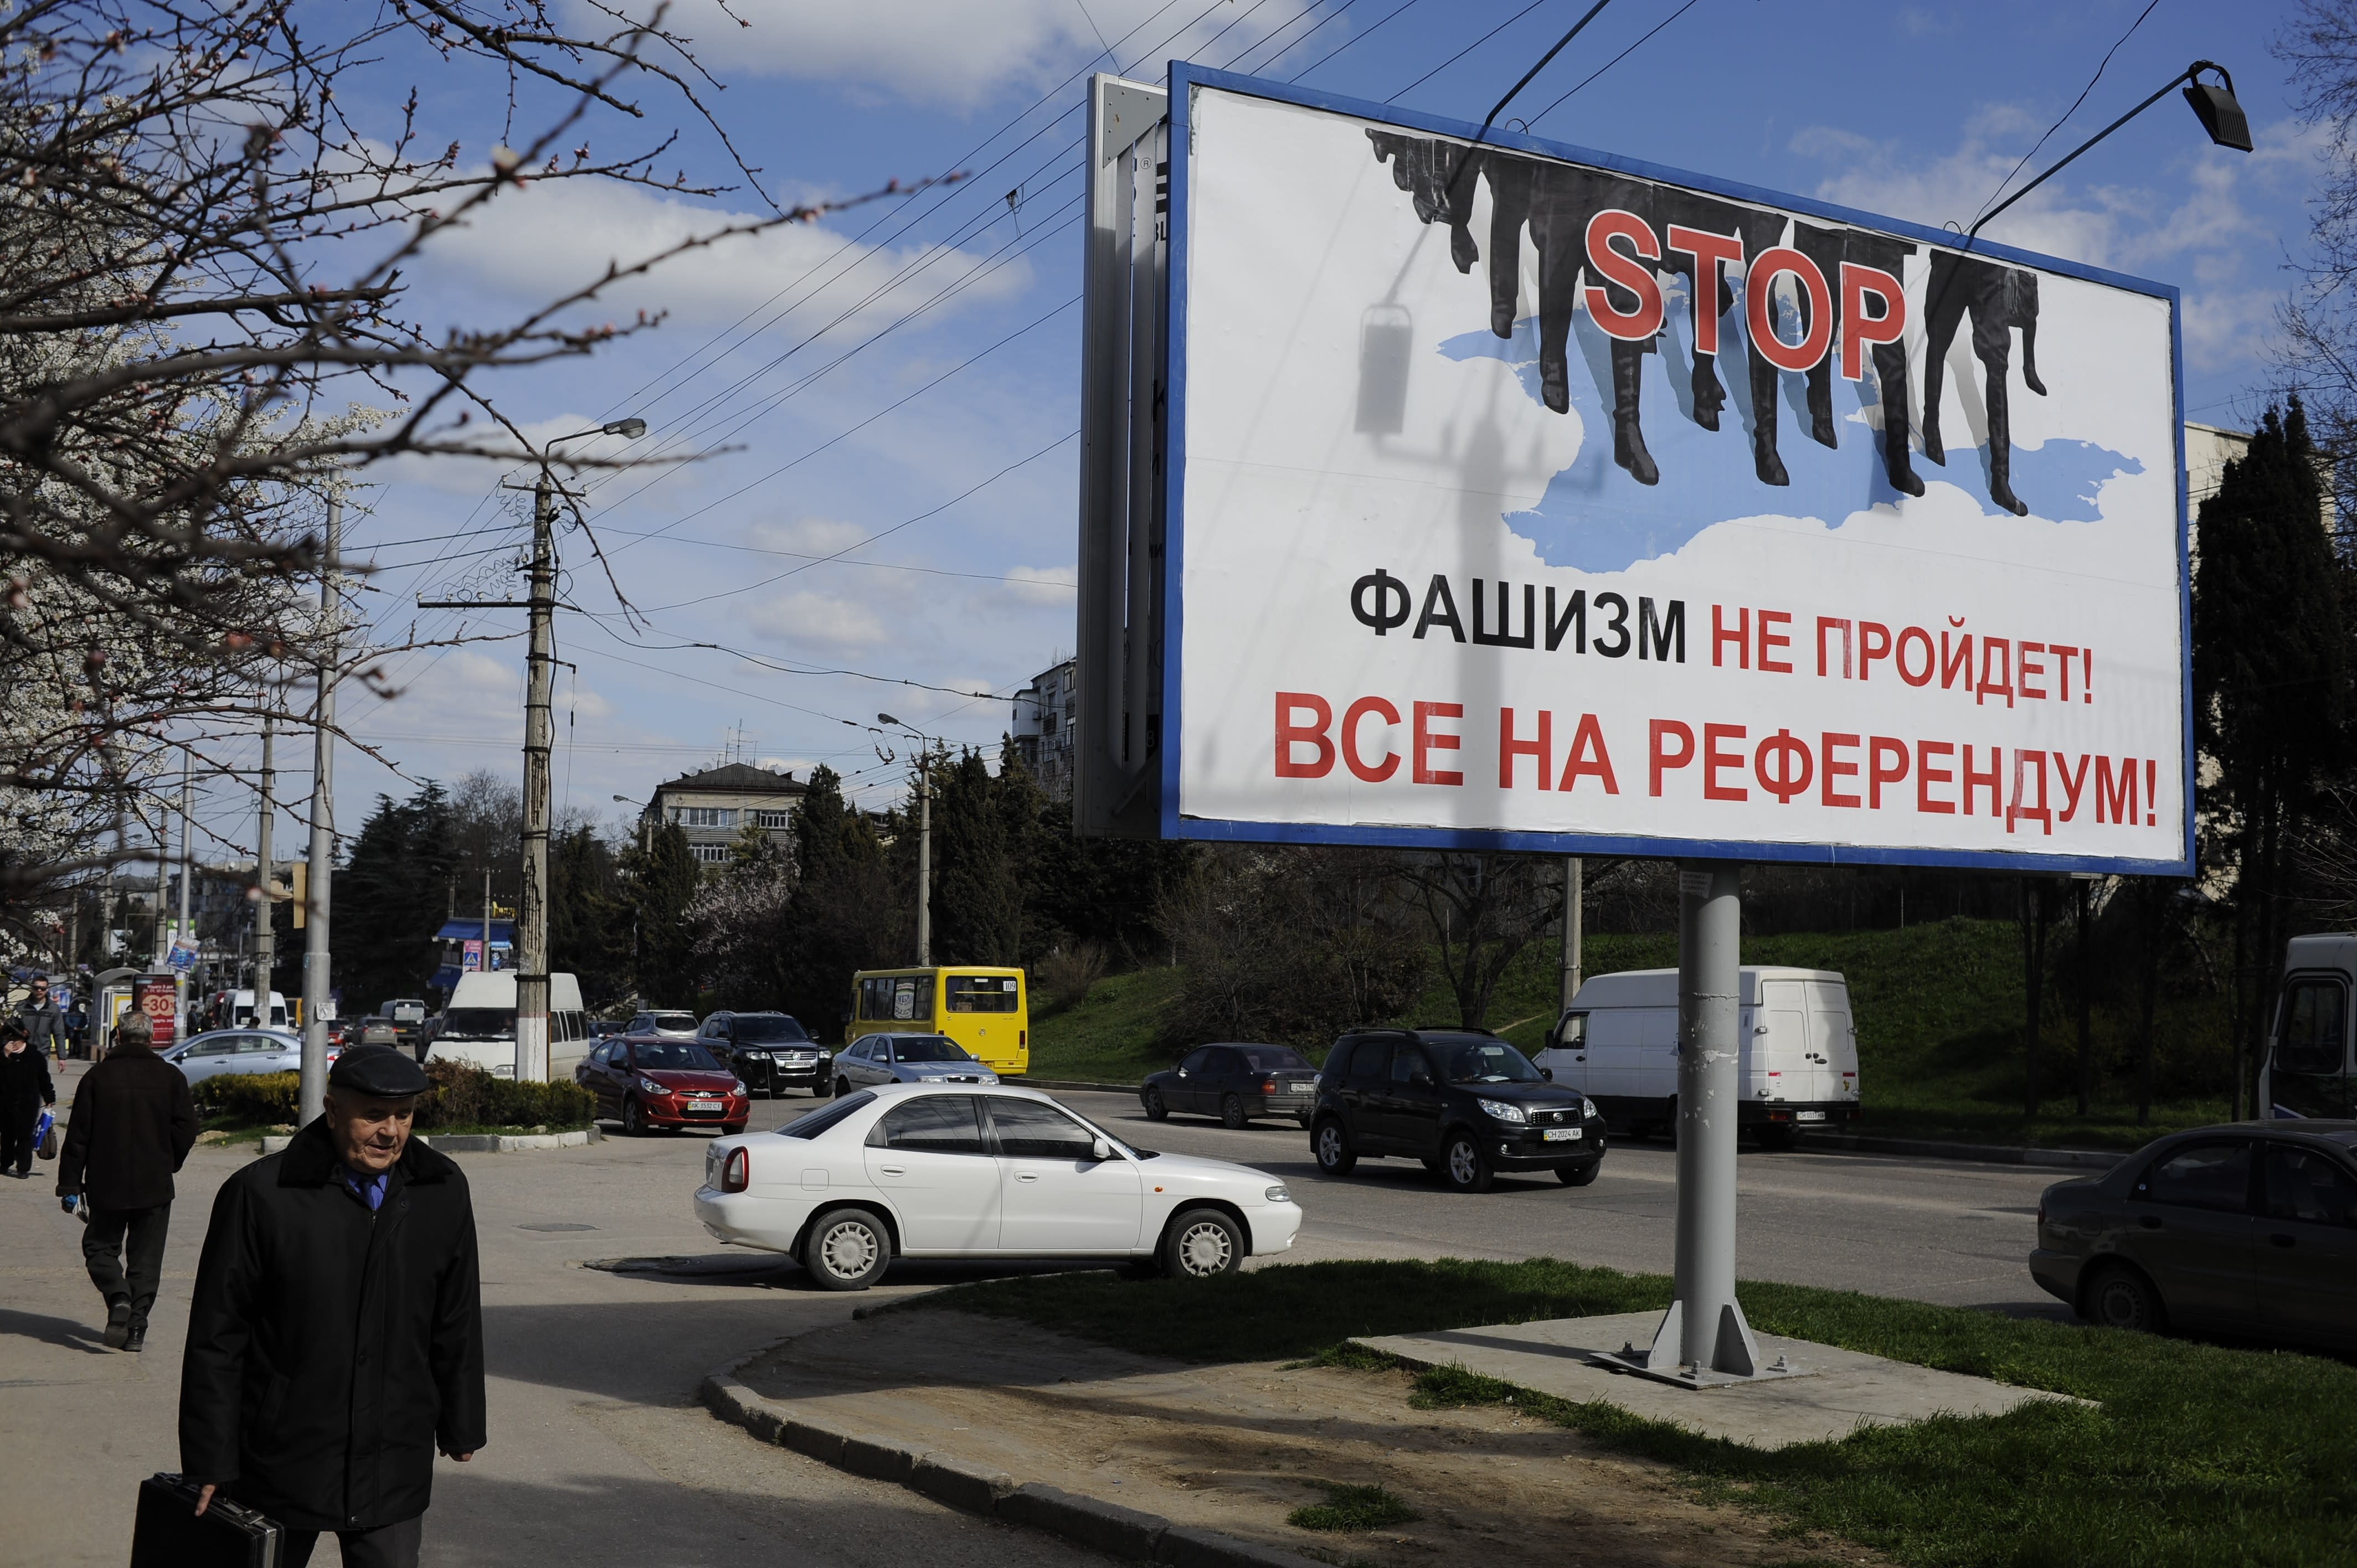 """People walk by a poster reading """"Fascism won't succeed. Everybody to the referendum!"""" in Sevastopol, Thursday, March 13, 2014. Crimea plans to hold a referendum on upcoming Sunday that will ask residents if they want the territory to become part of Russia. Ukraine's government and Western nations have denounced the referendum as illegitimate and warned Russia against trying to annex Crimea. (AP Photo/Andrew Lubimov)"""